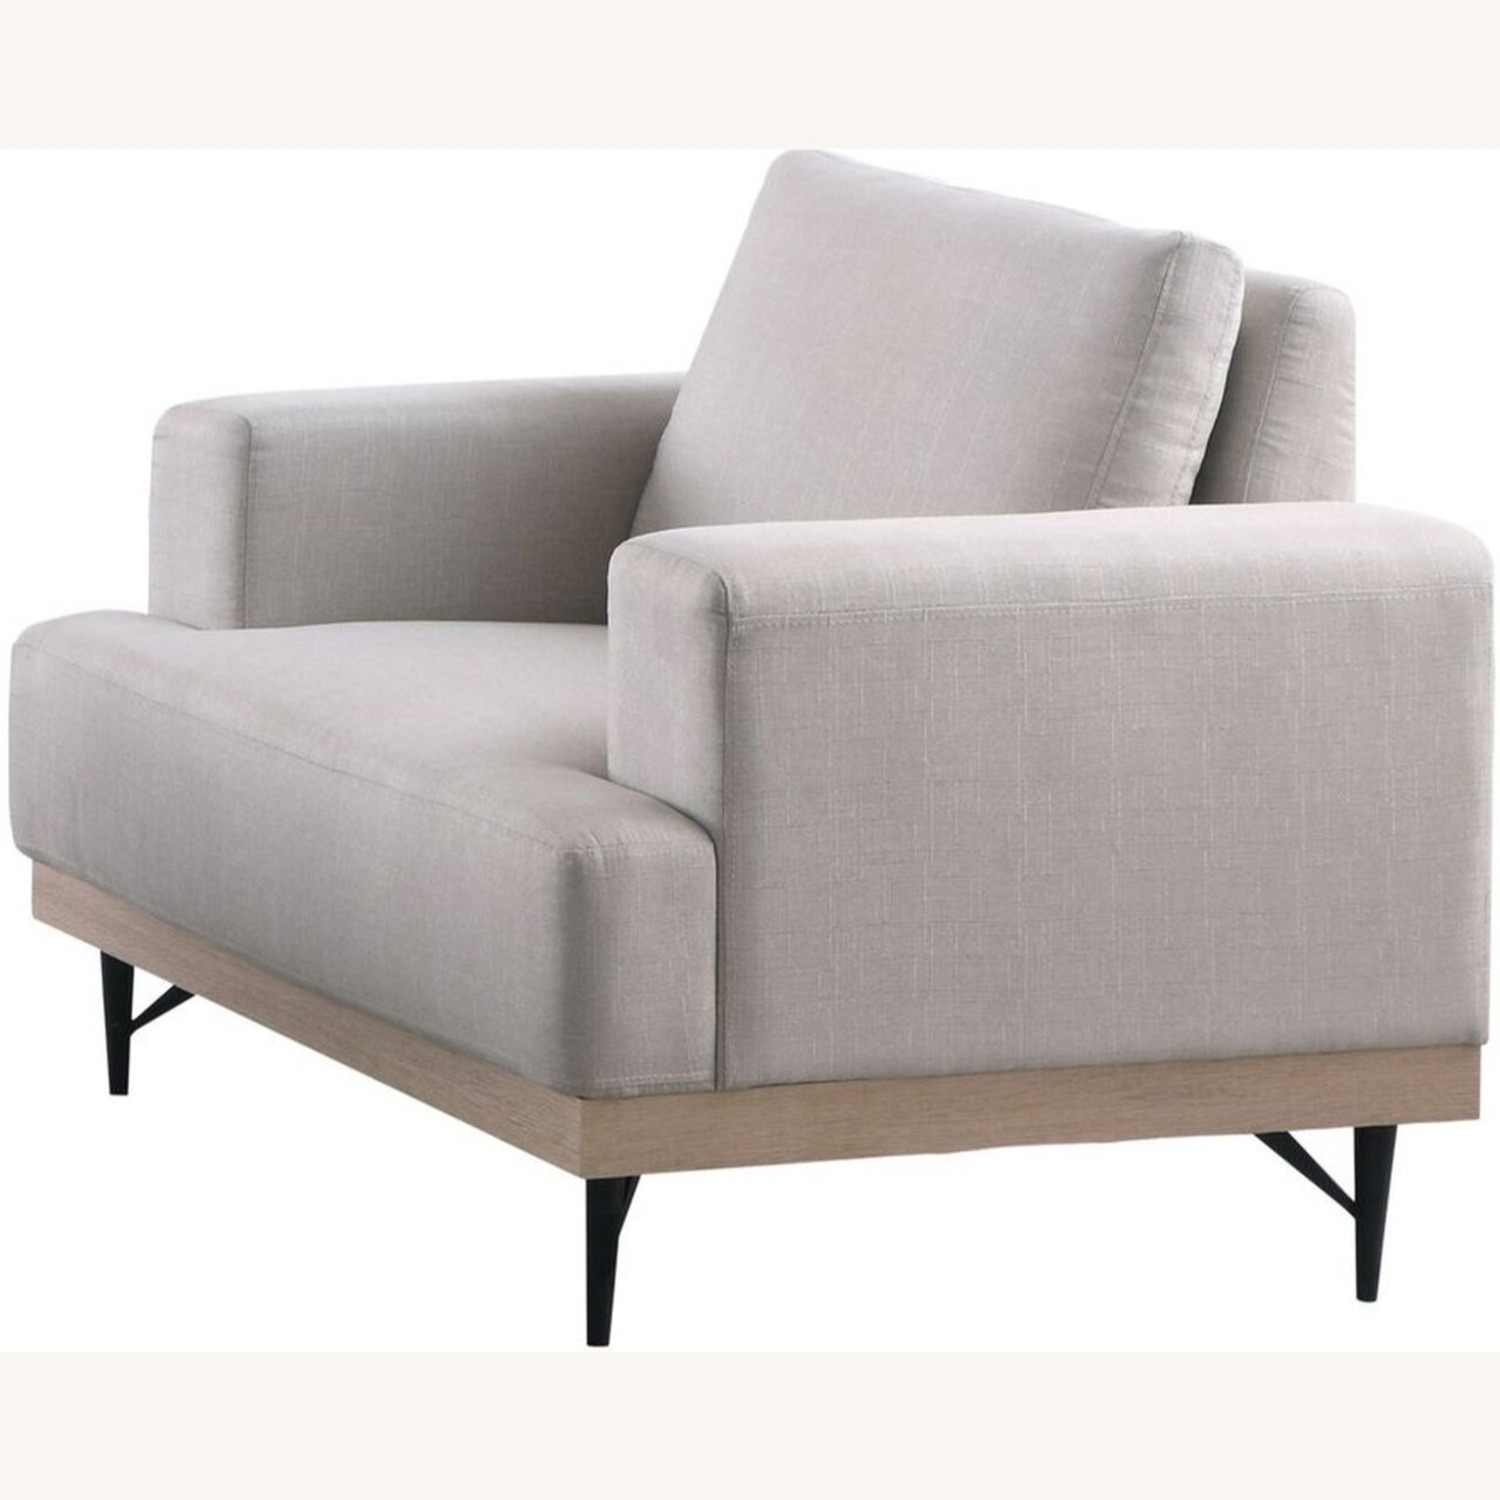 Chair In Beige Faux Linen W/ Pocket Coiled Seating - image-1